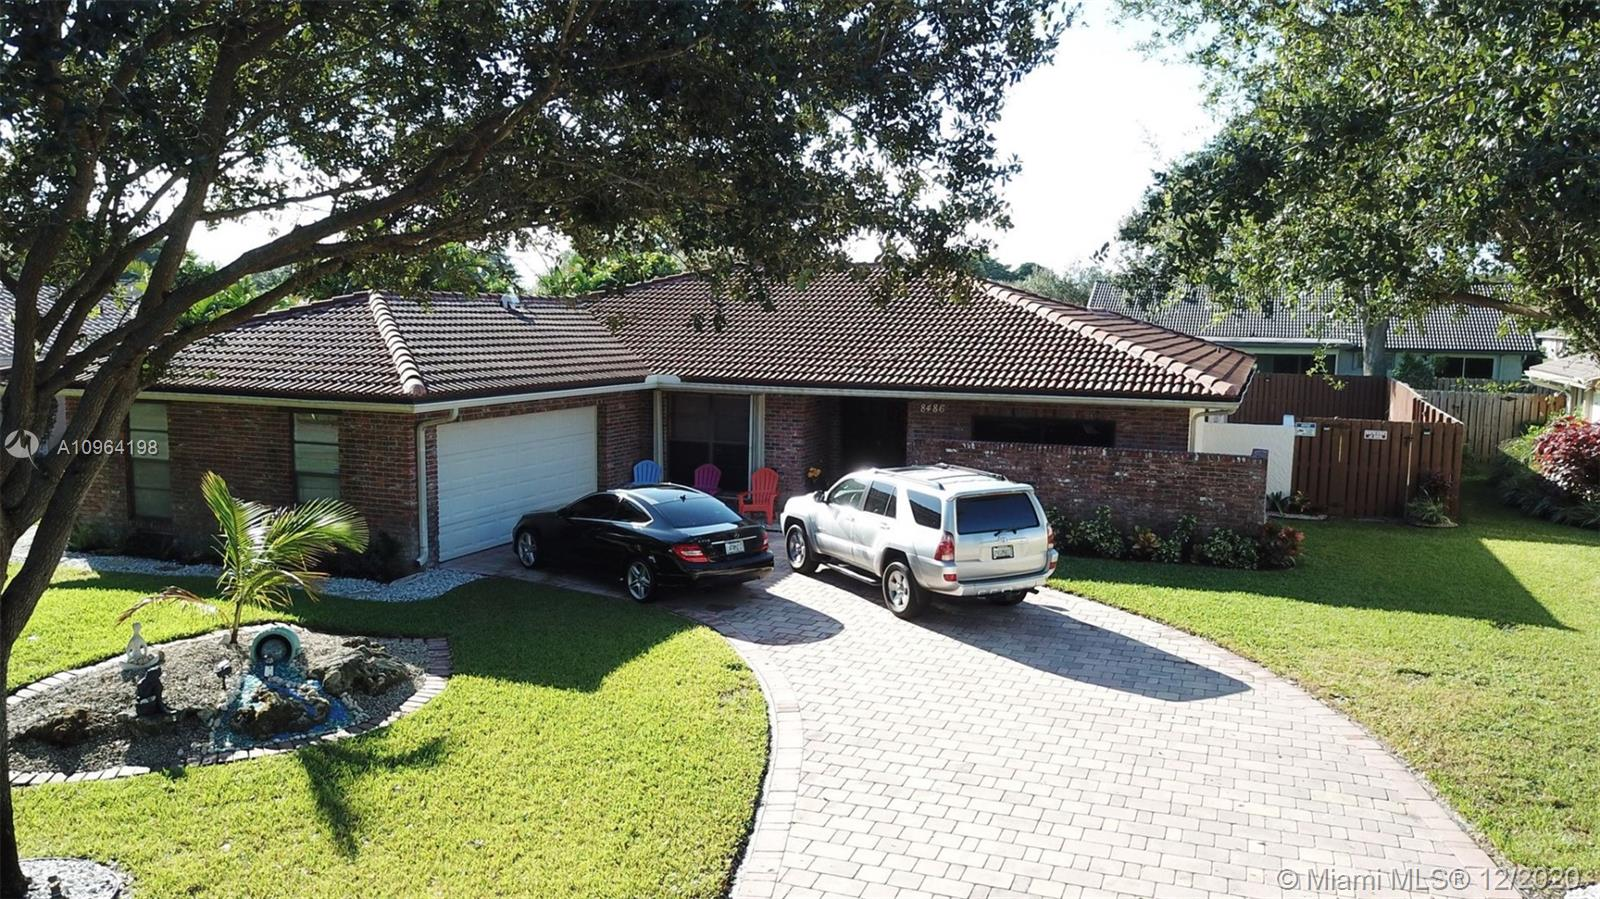 Recently updated home in highly a desired Coral Springs with NO HOA! New roof and water heater in 2018. Located within 3 miles of dog park, mall, and 3Mountain Park. LOCATION is PRIME! Tiled living area with crown molding throughout. Lots of windows with natural lighting. Recently updated large kitchen with granite countertops, bathrooms with a great outdoor grilling kitchen for entertaining family and friends. Heated pool to enjoy year round swimming. Plantation shutters in main living area to the pool deck. Newly updated 2 car garage. A/C recently updated for UV Filtering for fresh air to breathe indoors. Enjoy this gorgeous home in a safe neighborhood with little traffic. Updated to be a SMART home with Google Nest A/C, door, garage and LED lights throughout. Must wear mask to view.